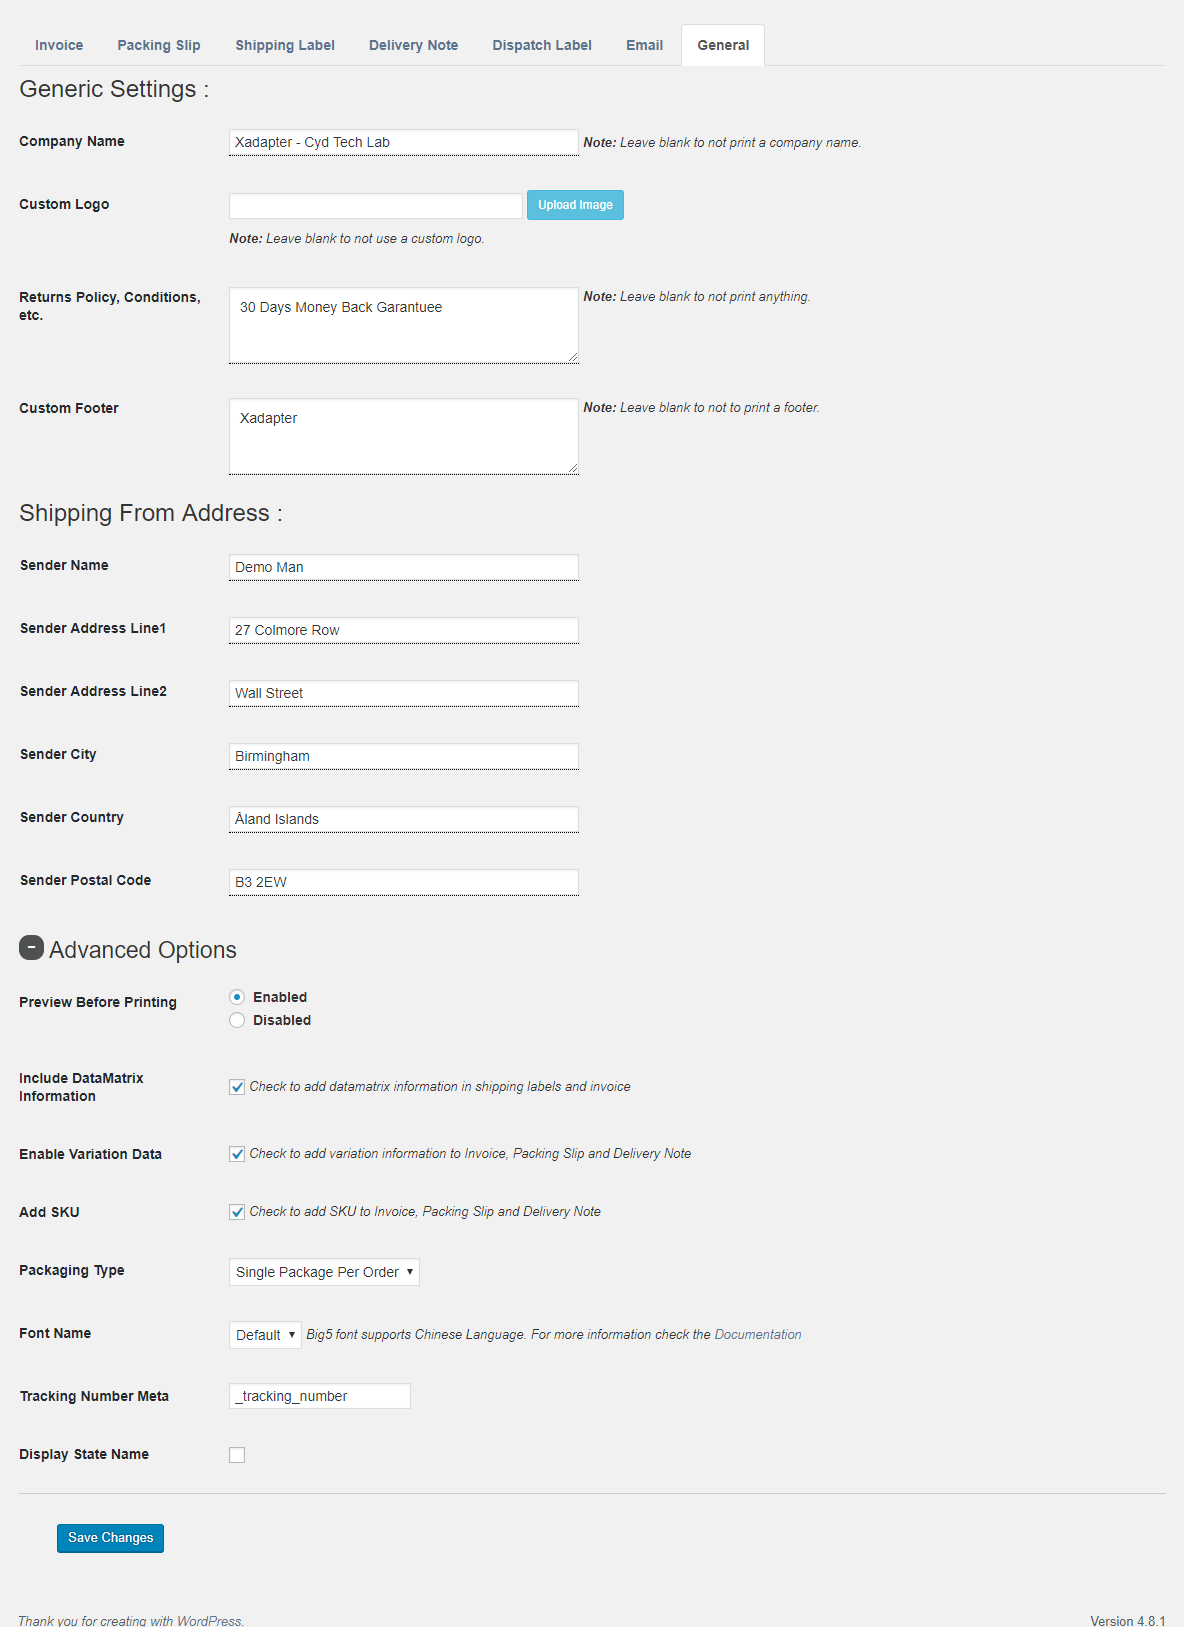 General Settings Page